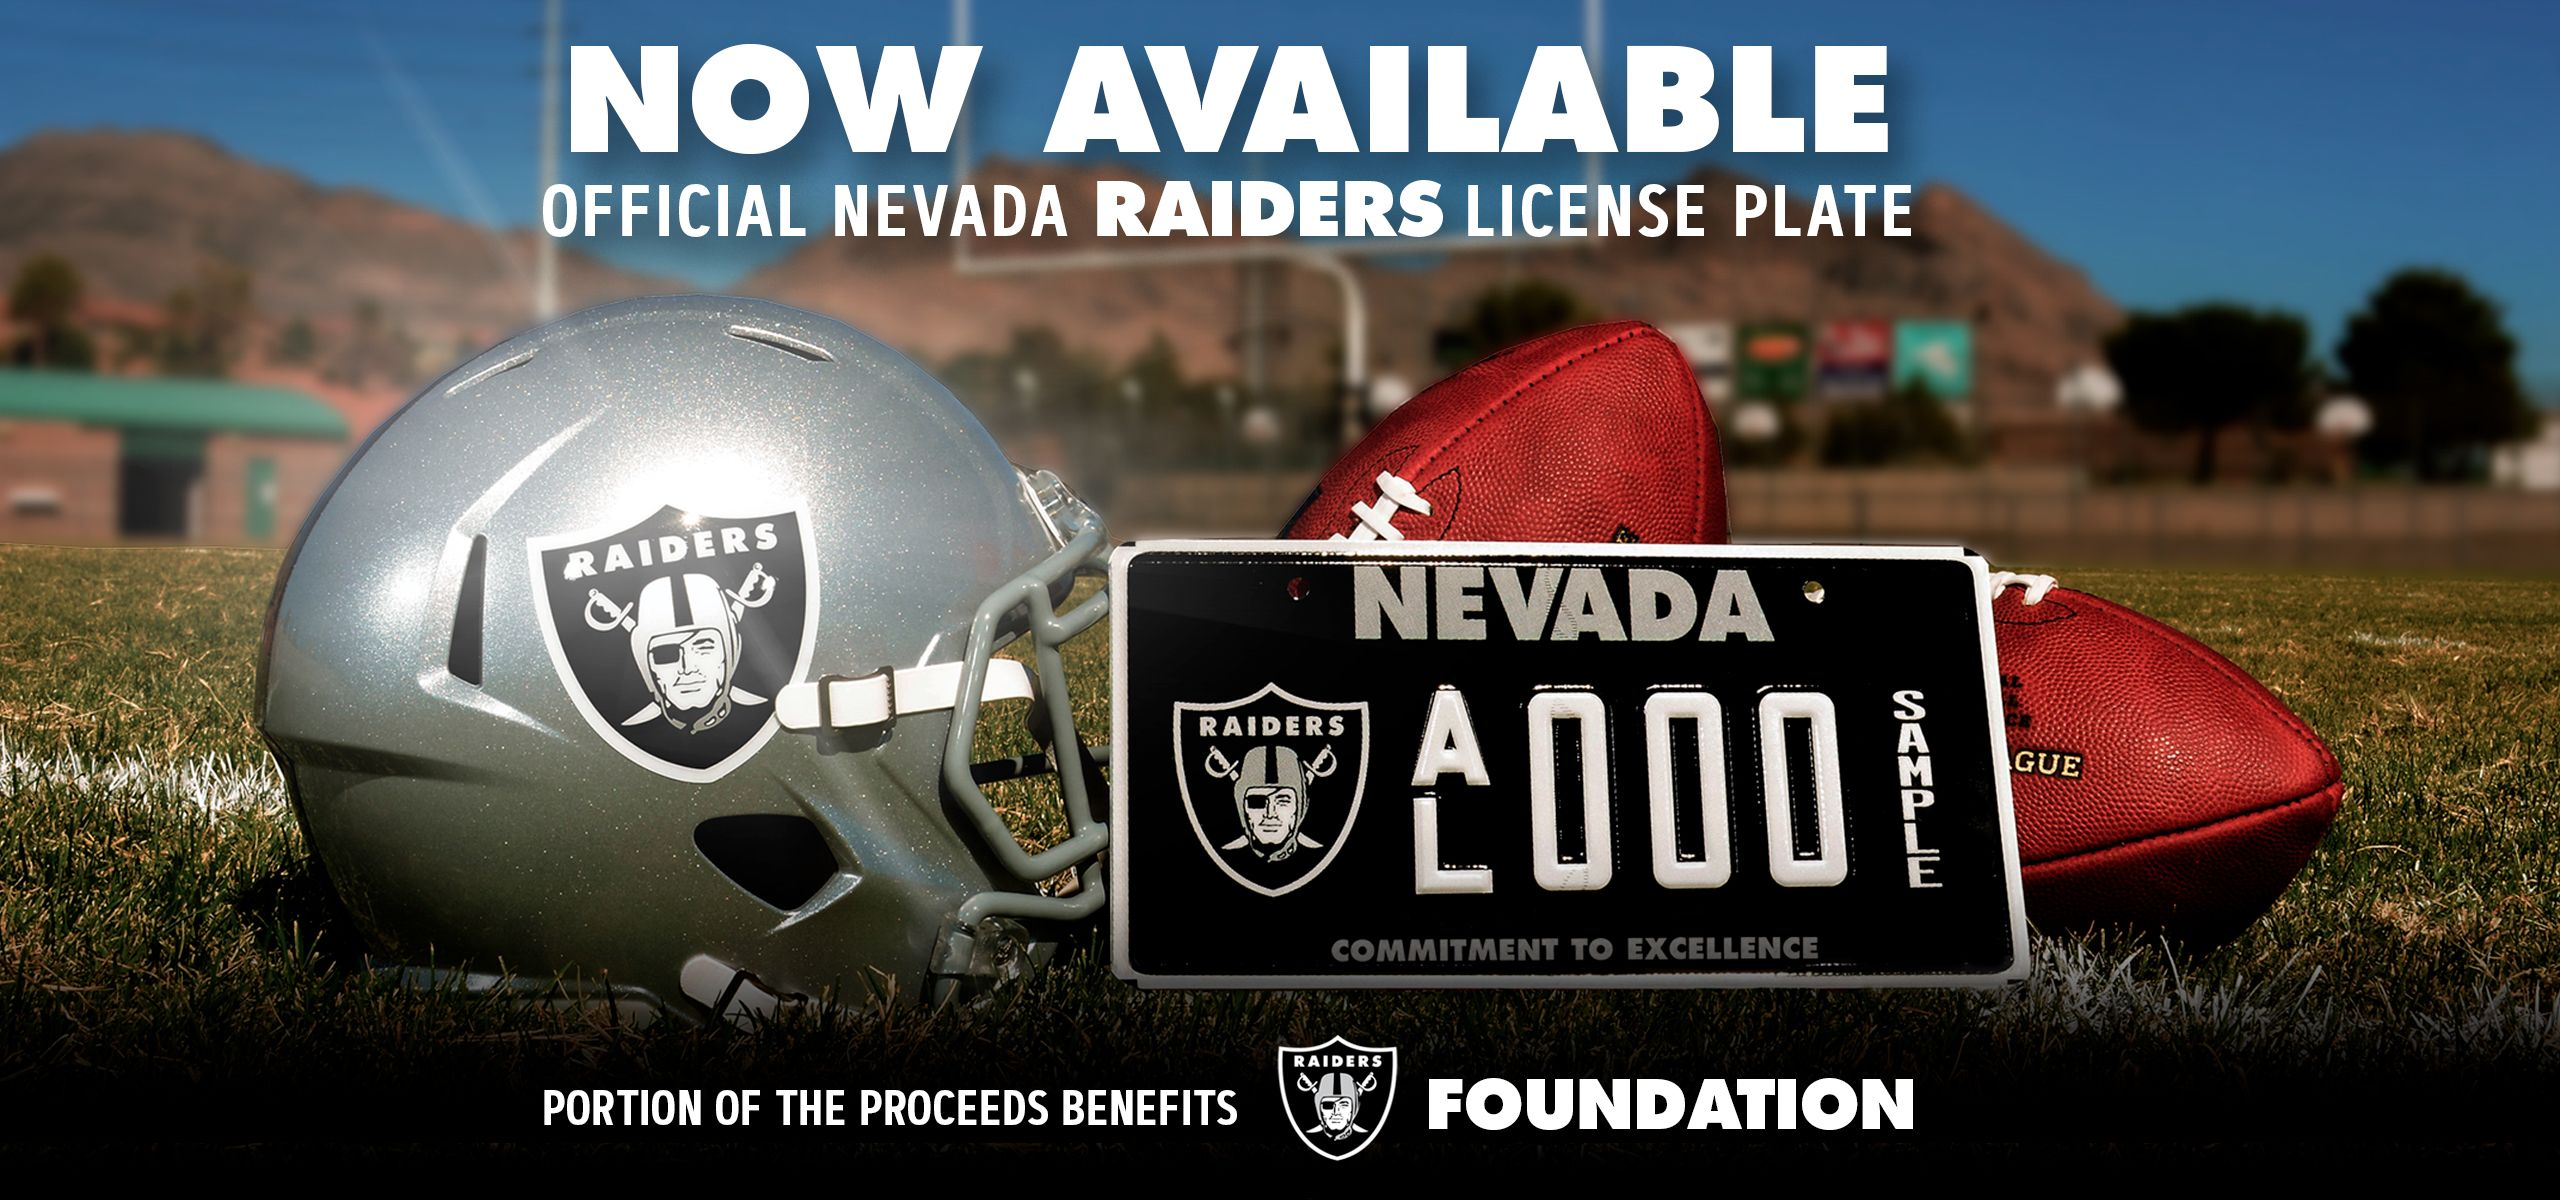 Coming soon official Raiders themed Nevada license plate